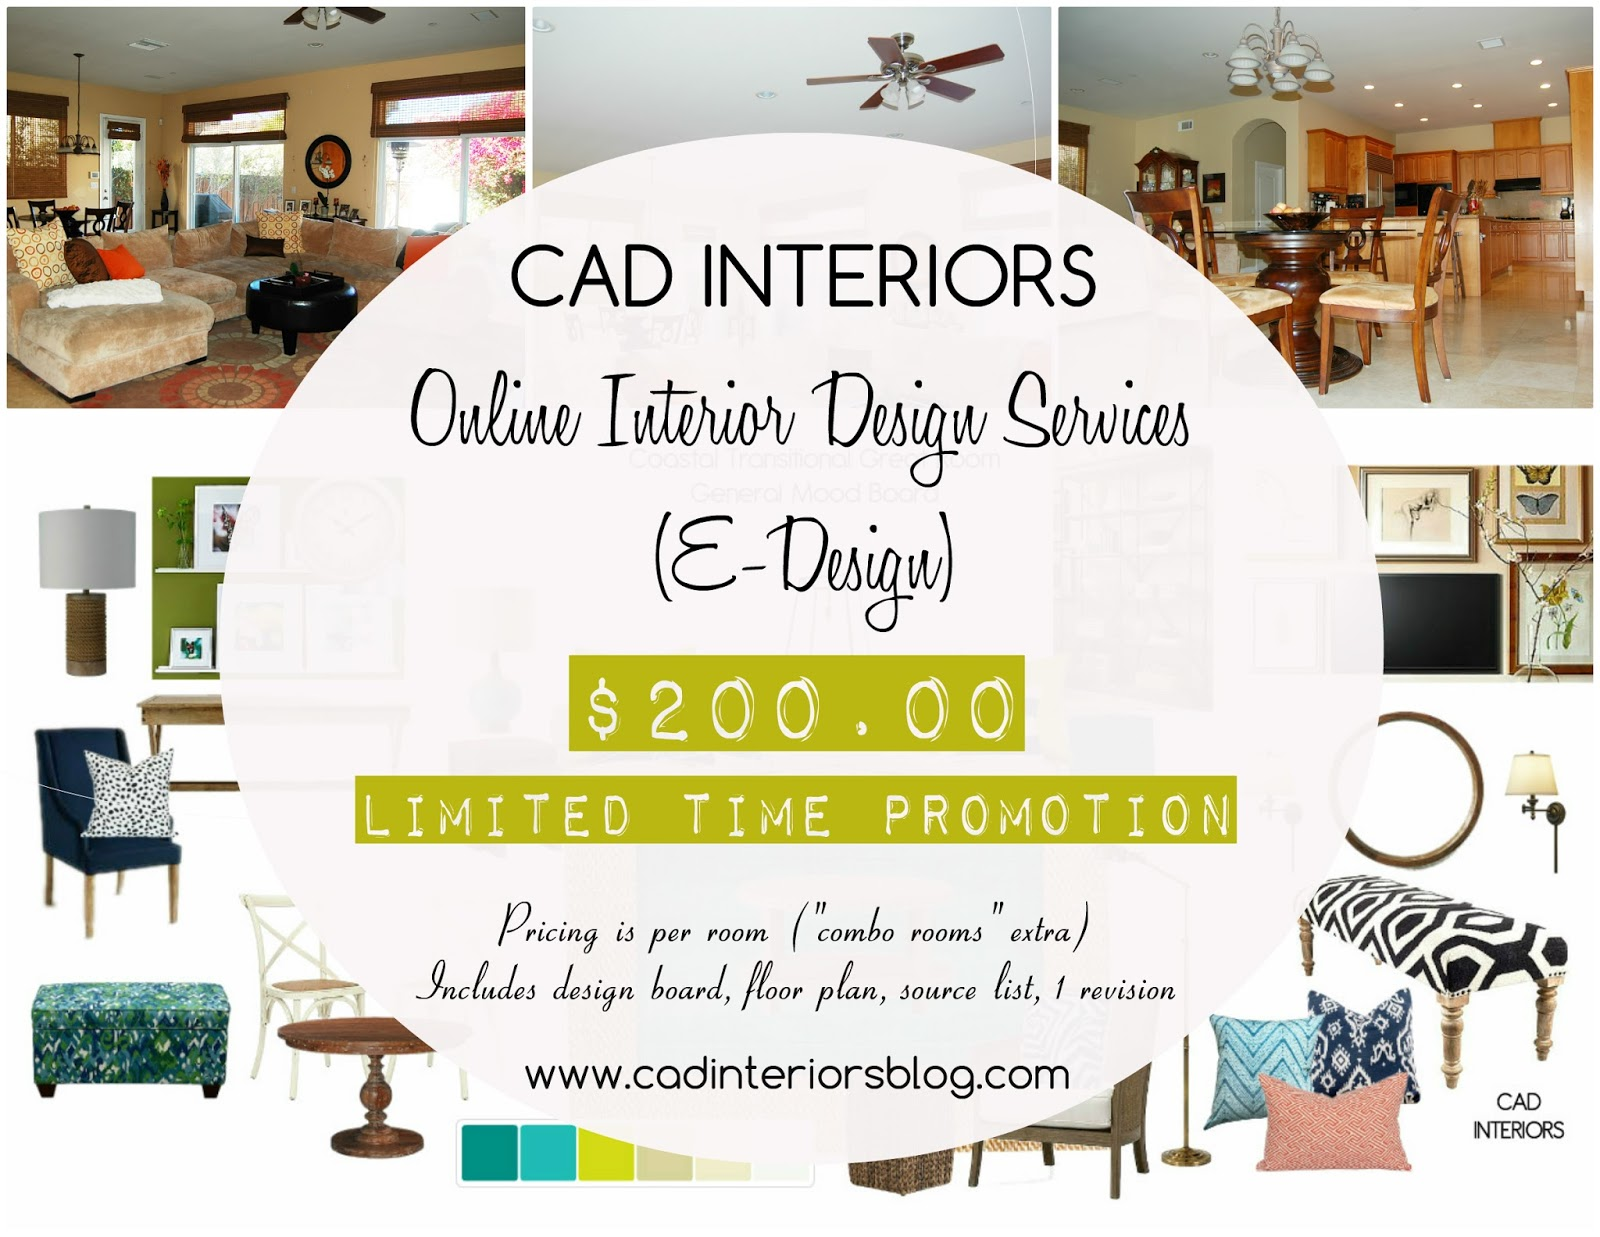 online e-design interior design services special pricing offer promo